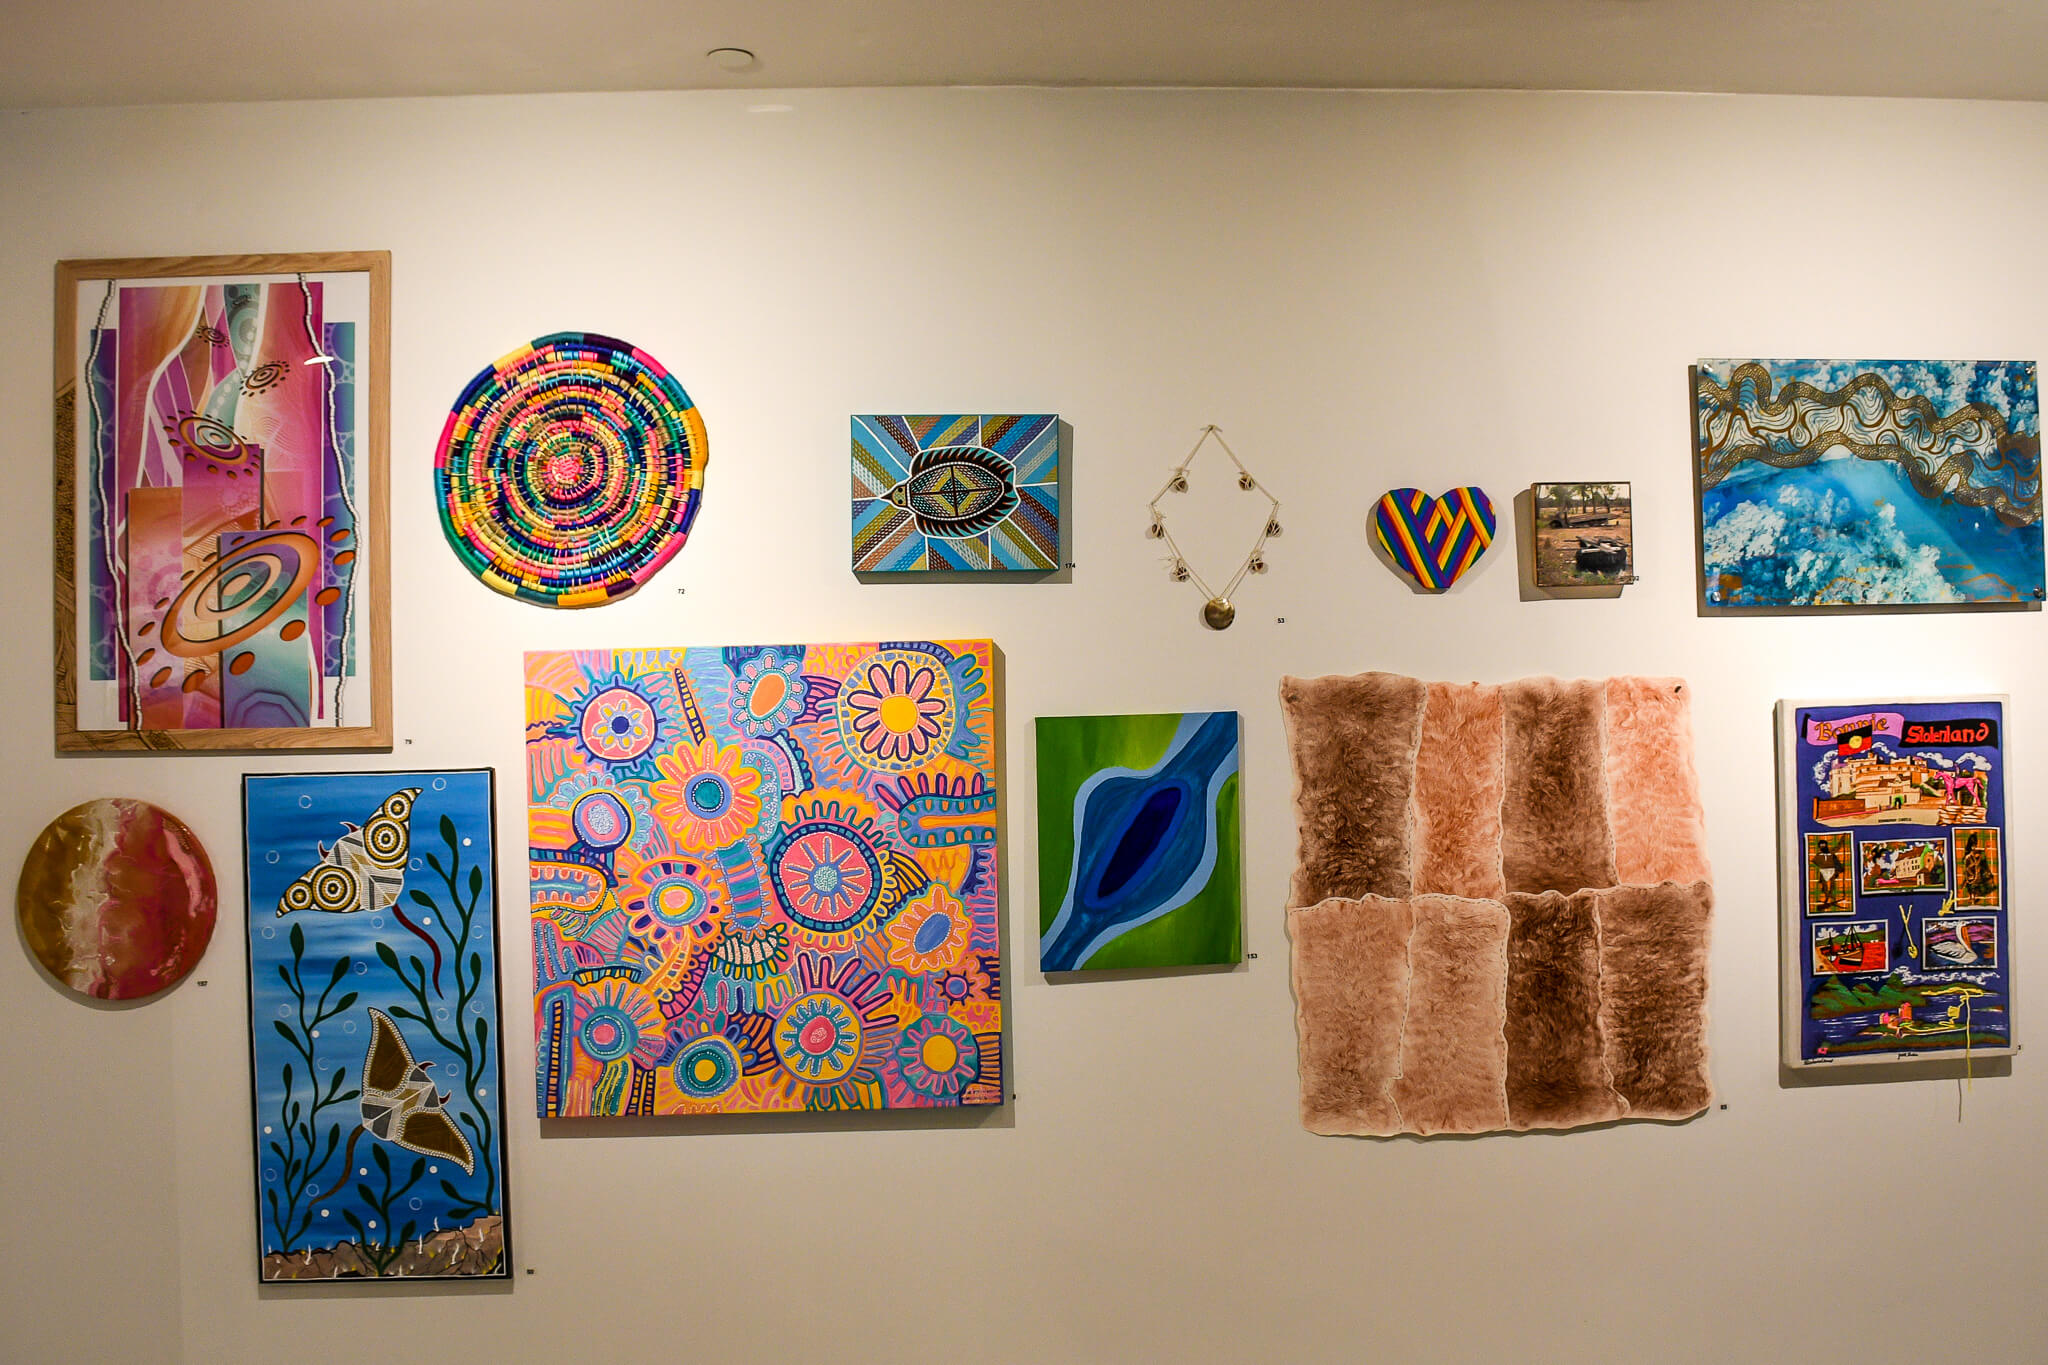 Exploring history, identity and story at the Koorie Art Show